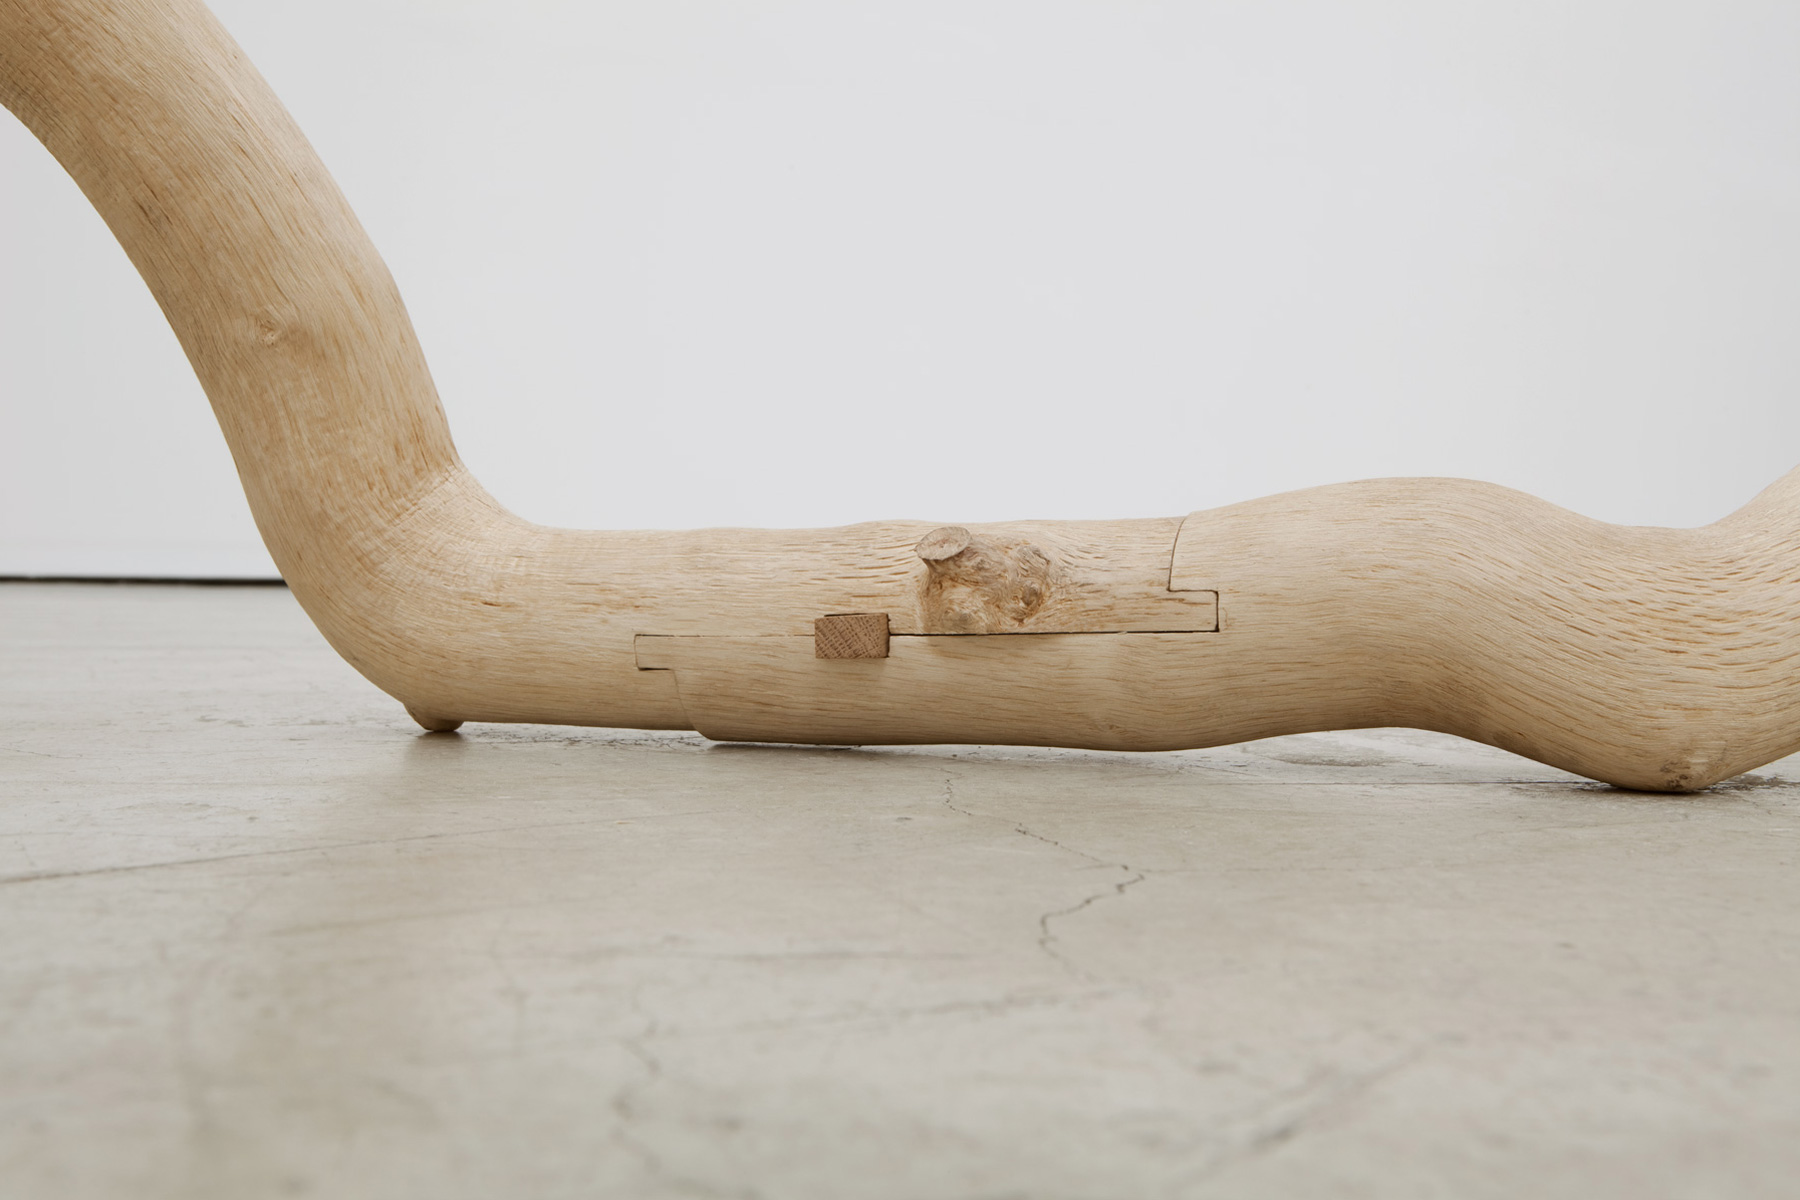 Alastair Mackie|Untitled (oak)|2013|oak|wood|tree|sculpture